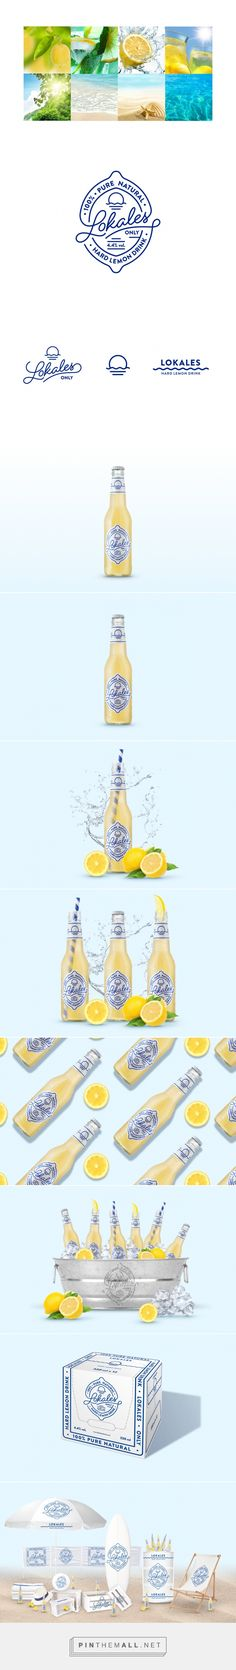 Lokales alcoholic lemonade packaging design by LANGE & LANGE - http://www.packagingoftheworld.com/2017/01/lokales.html